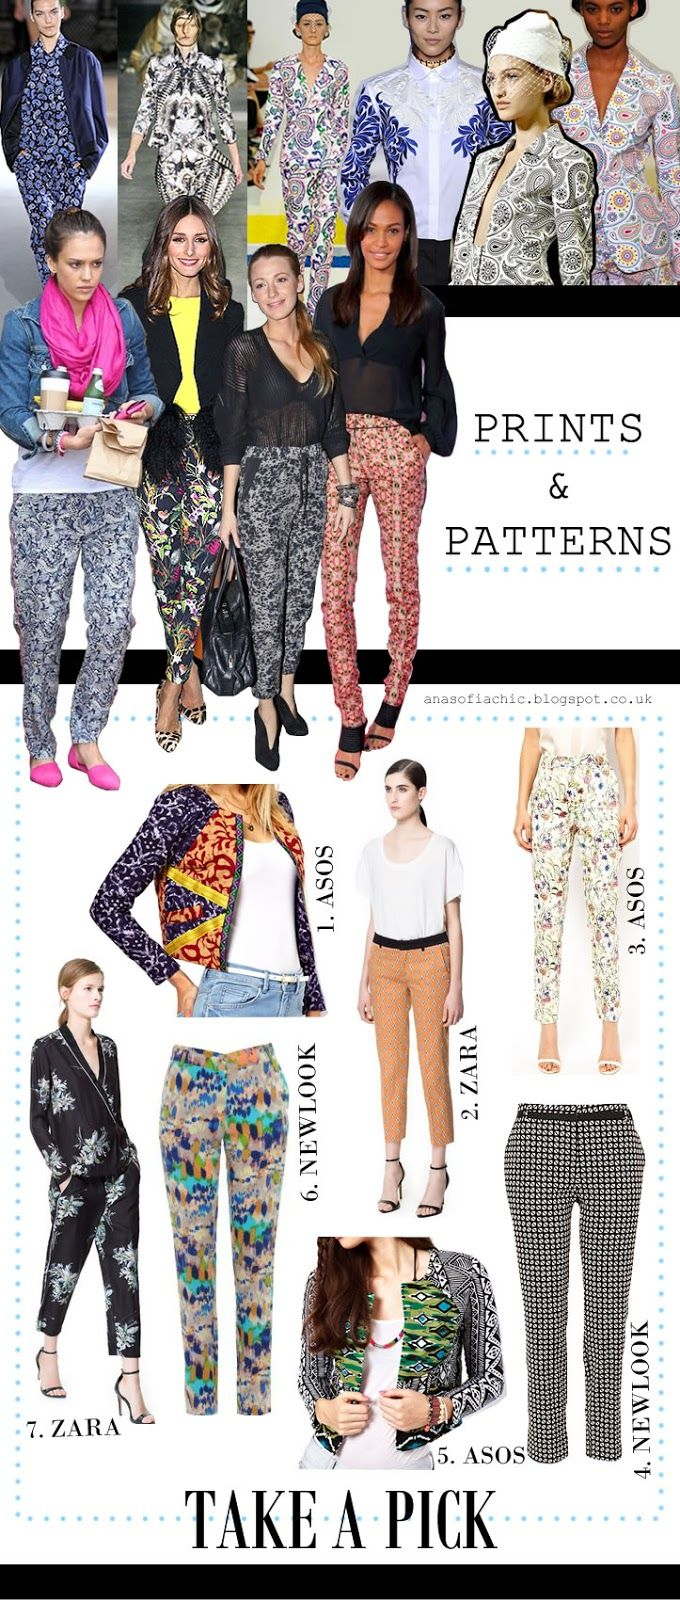 Trending: Prints and Patterns. Be bold.